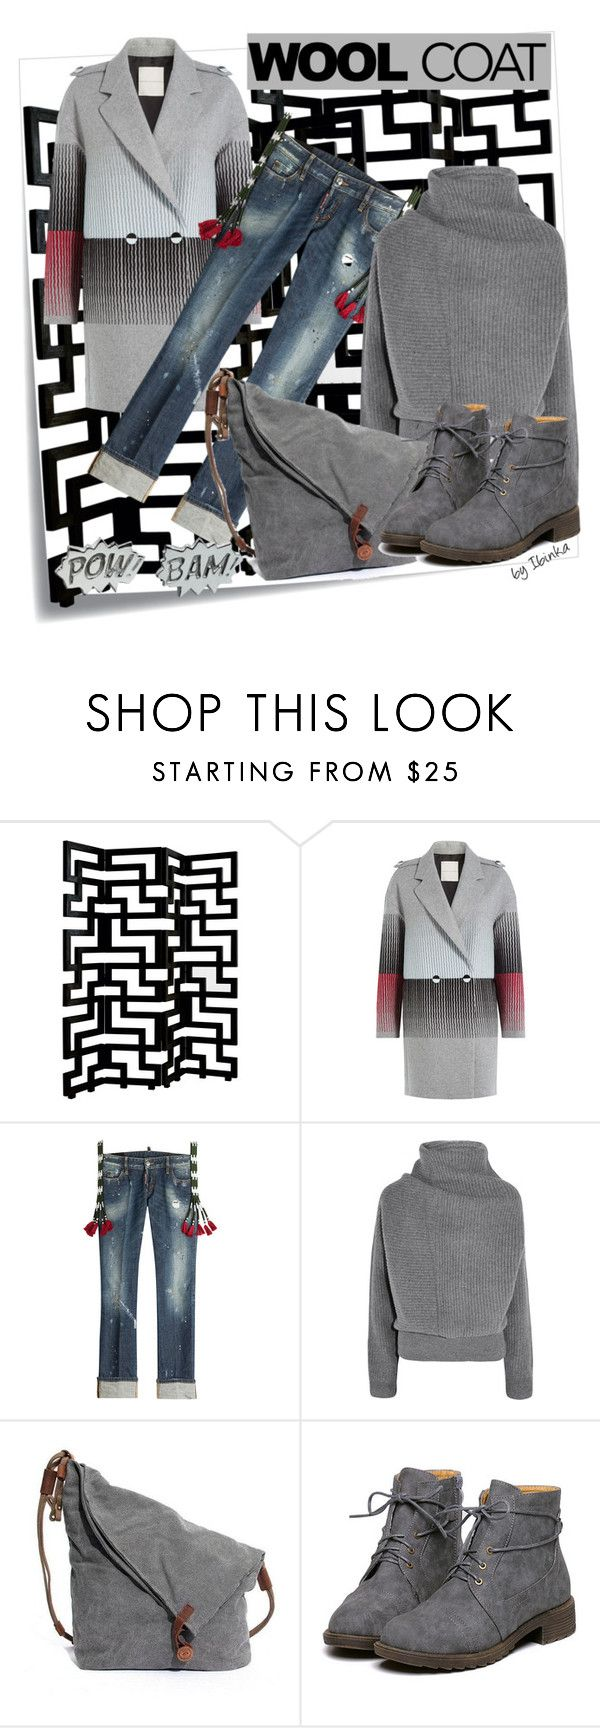 Wool Coat by ibinka on Polyvore featuring Acne Studios, Marco de Vincenzo, Dsquared2, Edge Only, Brownstone and Post-It